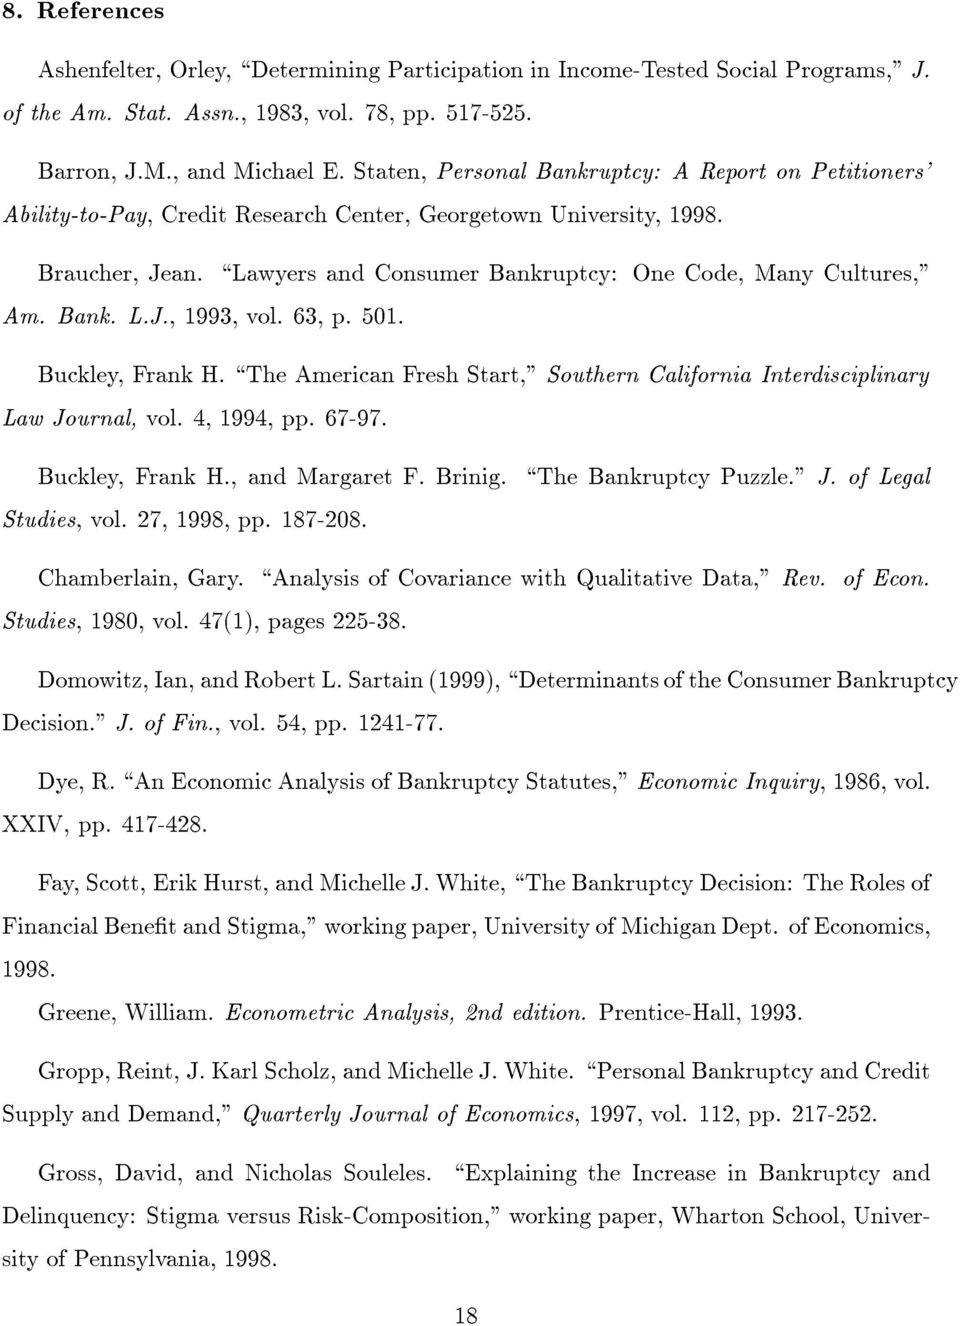 "\Lawyers and Consumer Bankruptcy: One Code, Many Cultures,"" Am. Bank. L.J., 1993, vol. 63, p. 501. Buckley, Frank H. \The American Fresh Start,"" Southern California Interdisciplinary Law Journal, vol."